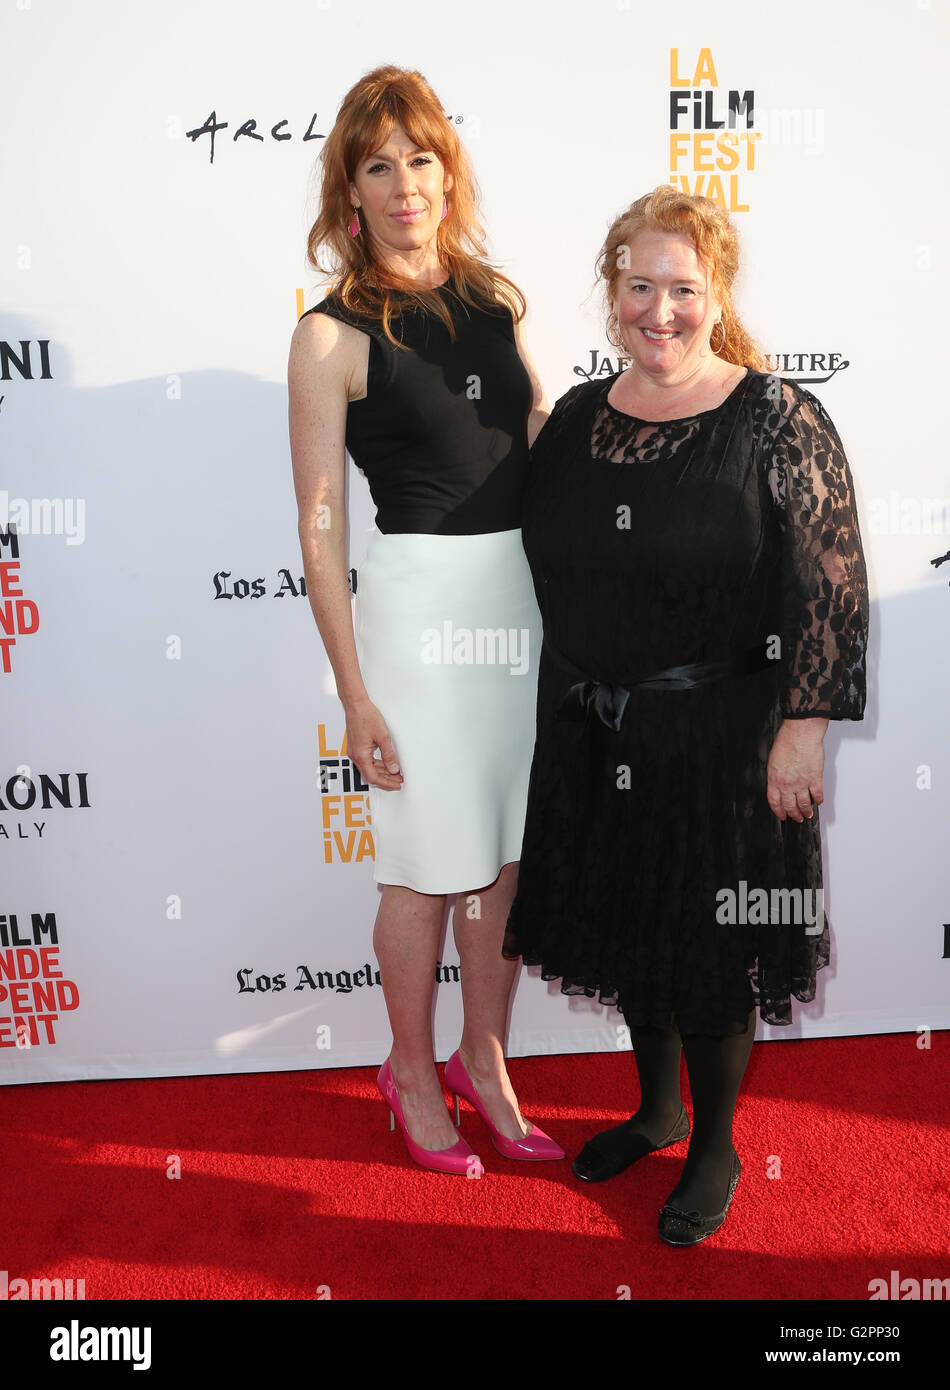 Hollywood, CA, USA. 1st June, 2016. 01 June 2016 - Hollywood, Kate Nowlin, Rusty Schwimmer. 2016 Los Angeles Film Stock Photo